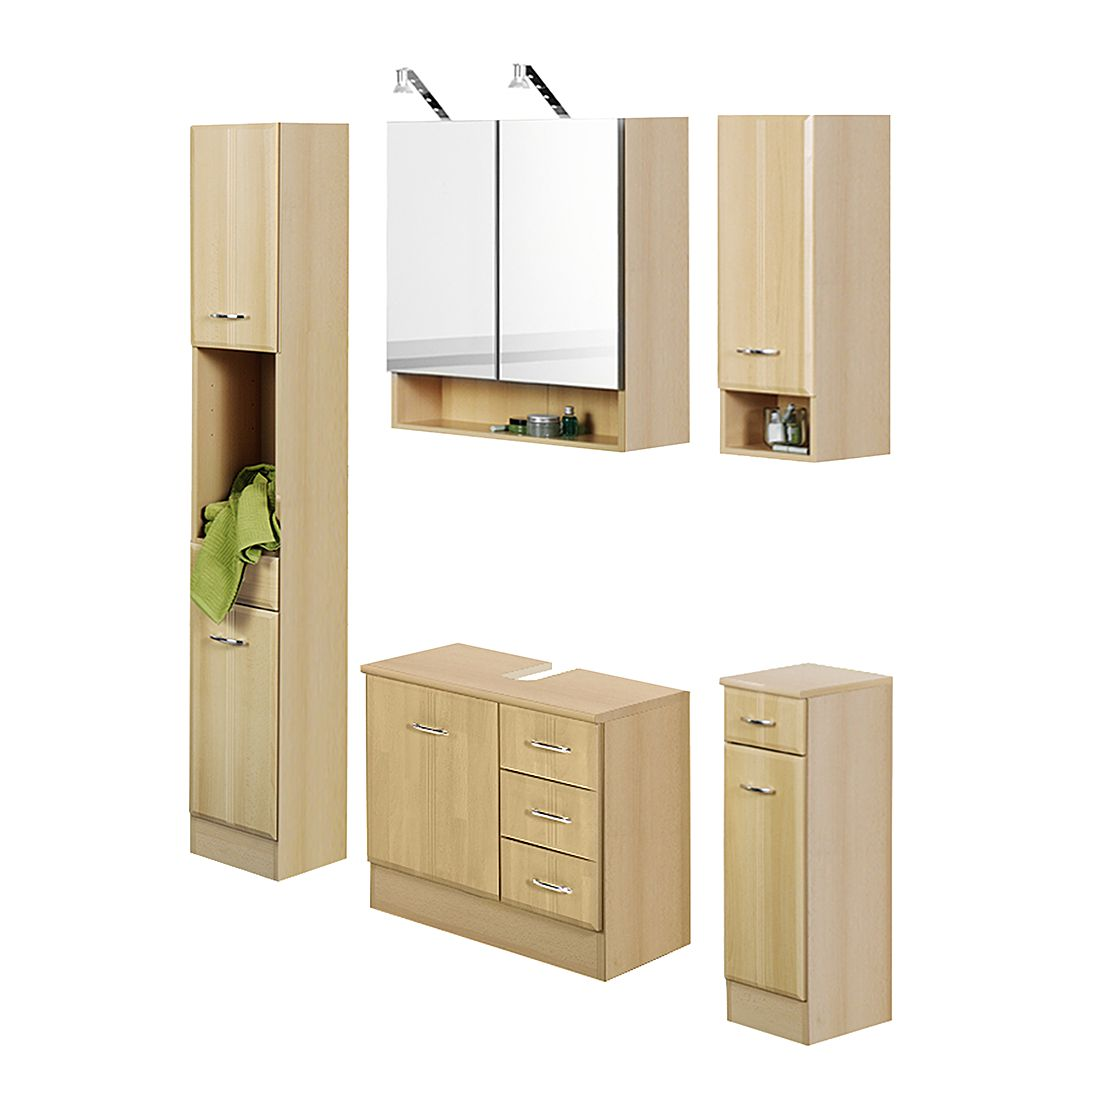 badezimmerset lund buche 4er set giessbach g nstig online kaufen. Black Bedroom Furniture Sets. Home Design Ideas